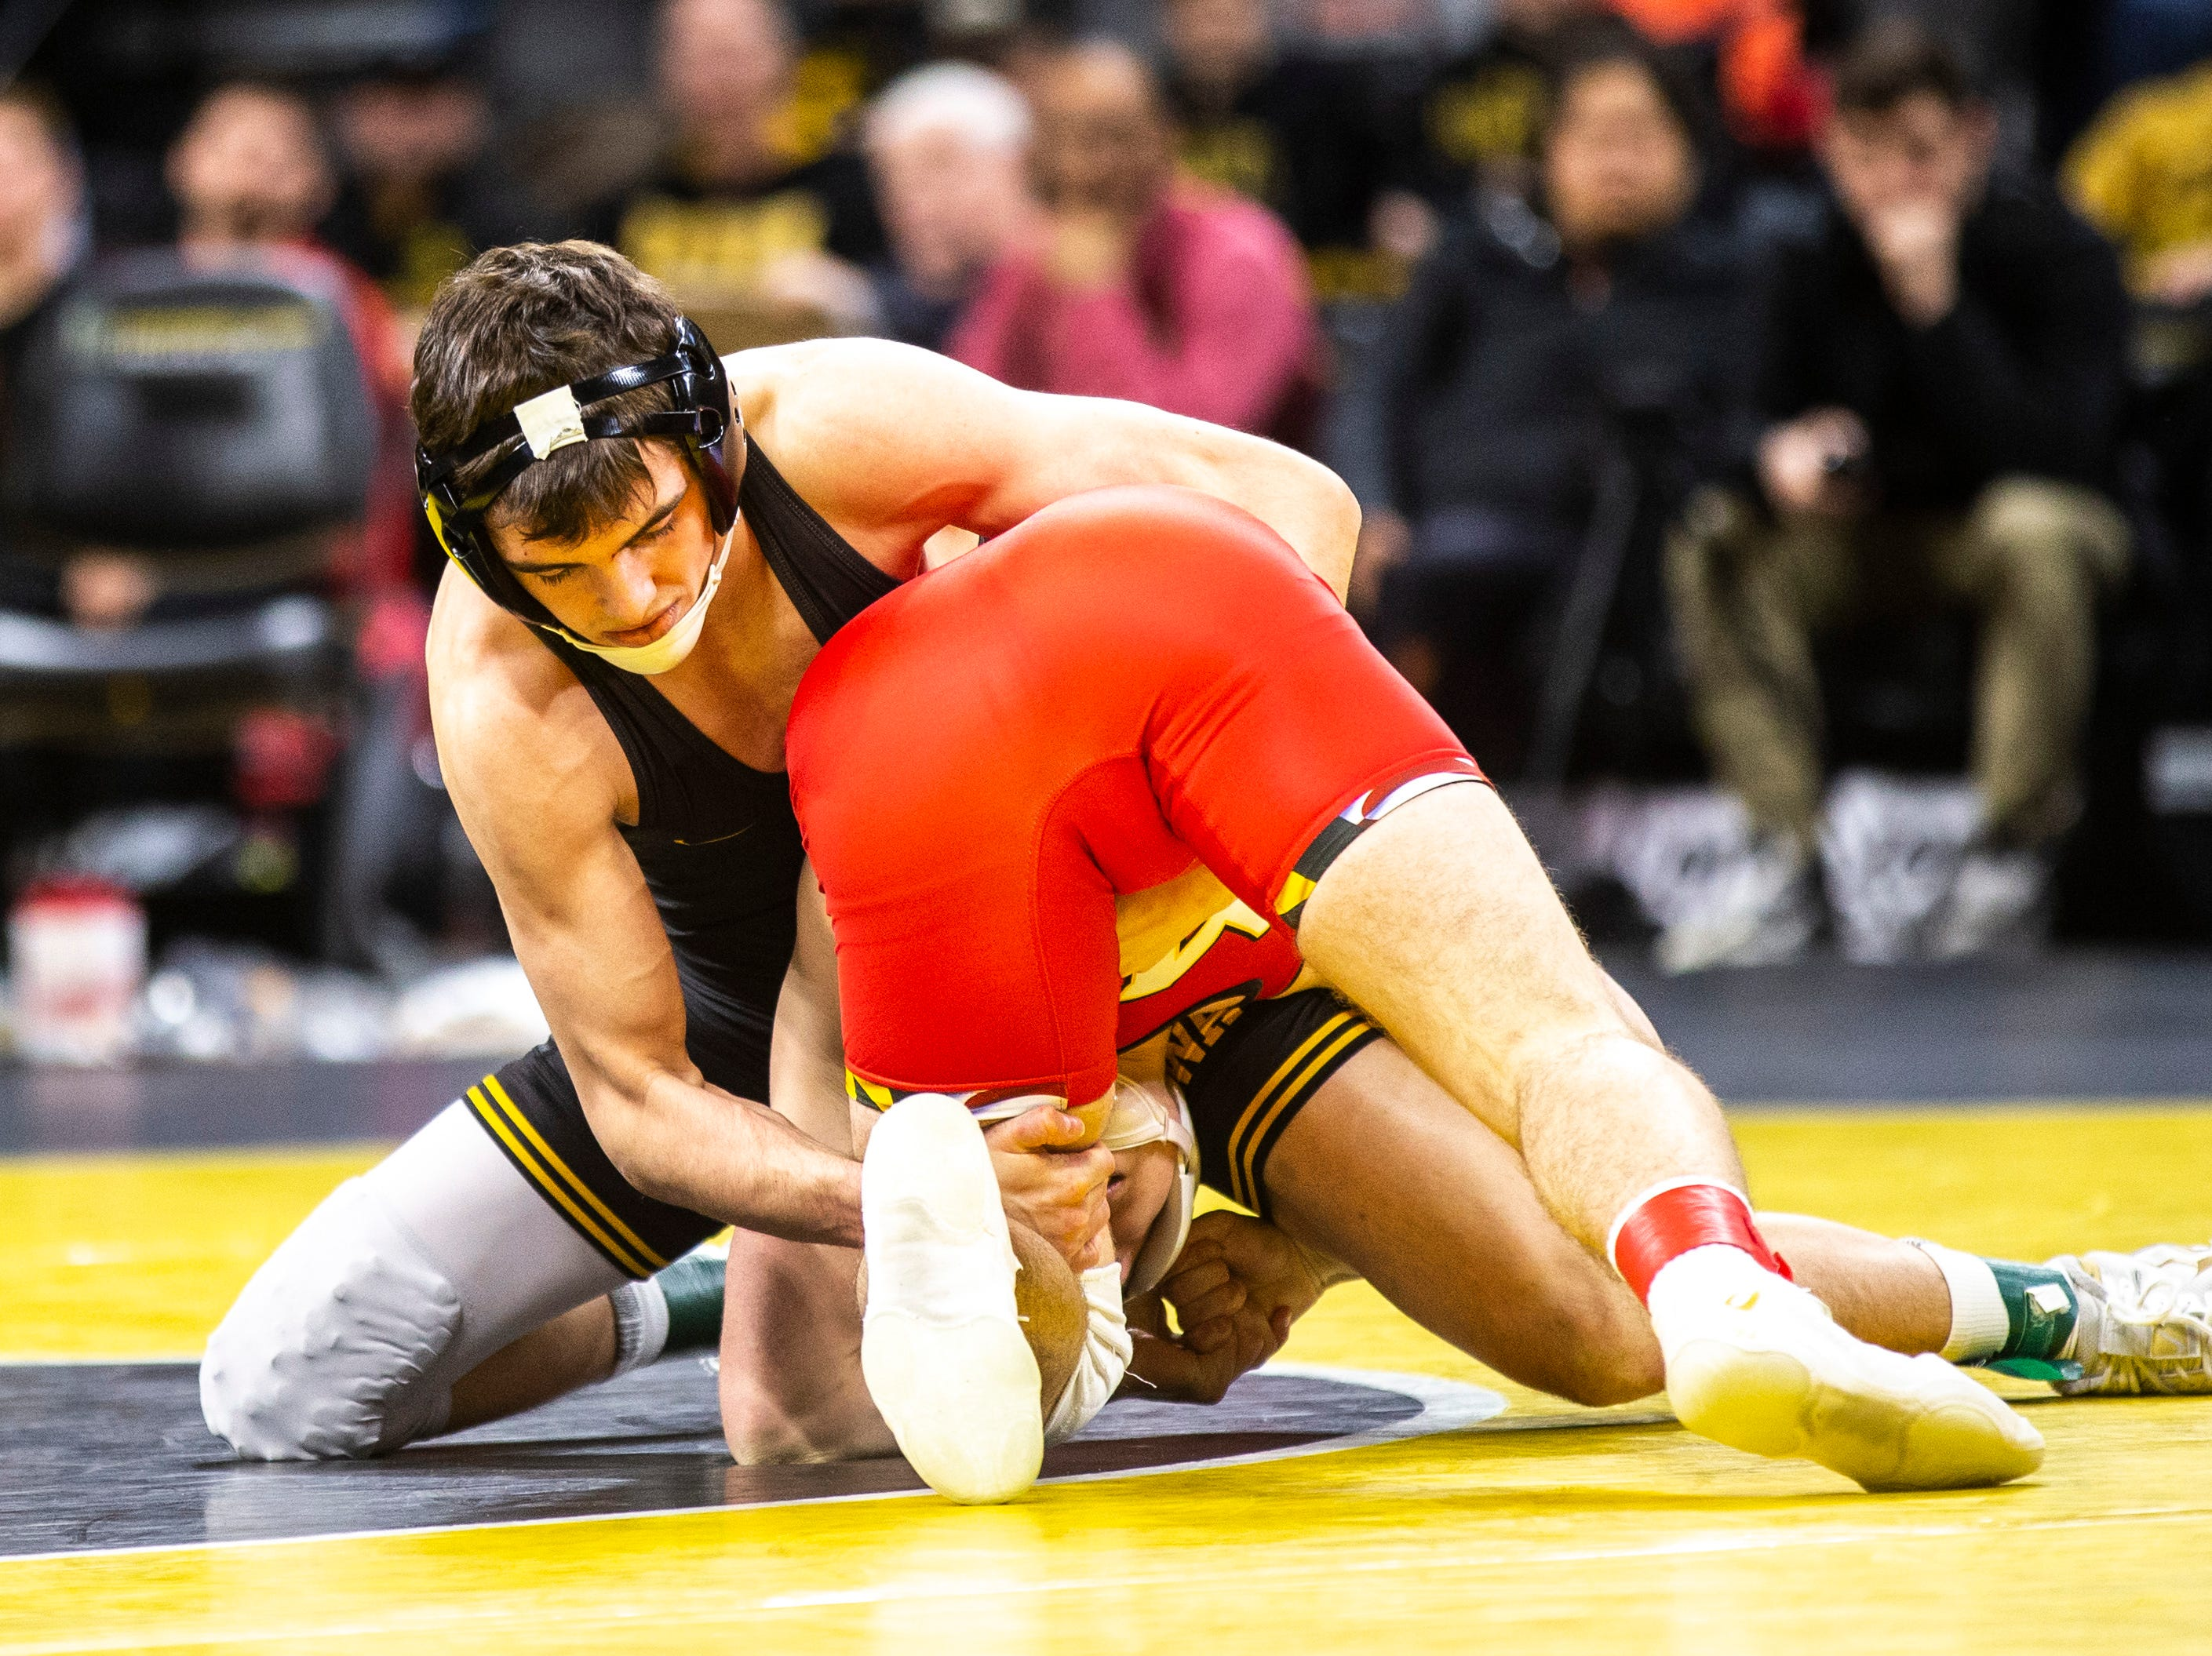 Iowa's Paul Glynn, left, wrestles Maryland's Orion Anderson at 133 during a NCAA Big Ten Conference wrestling dual on Friday, Feb. 8, 2019 at Carver-Hawkeye Arena in Iowa City, Iowa.